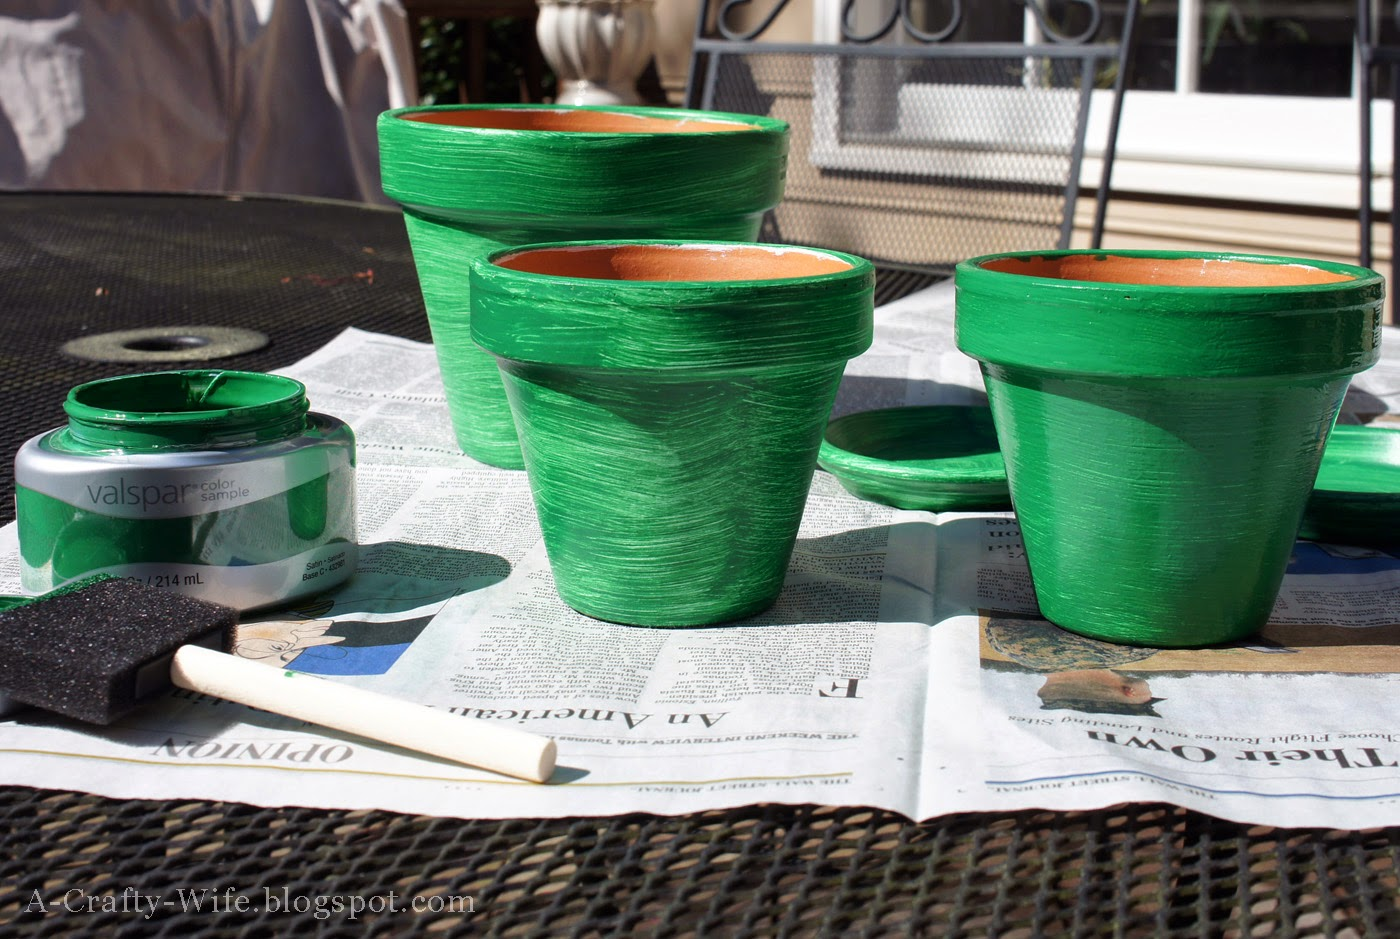 Painted terra cotta pots for houseplants | A Crafty Wife